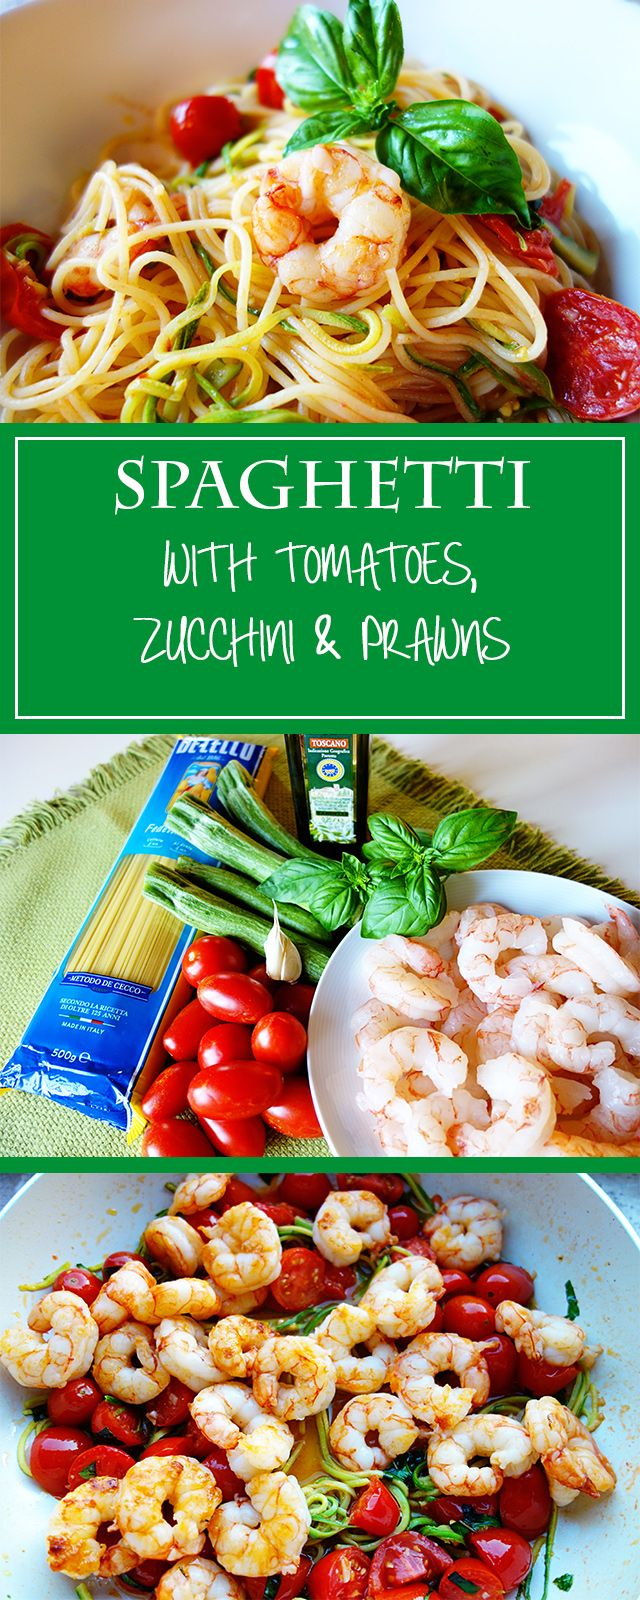 Zucchini-tomato-pasta with prawns - a light, healthy & quick pasta-recipe for summertime! Irresistably hearty & delicious    cucina-con-amore.com